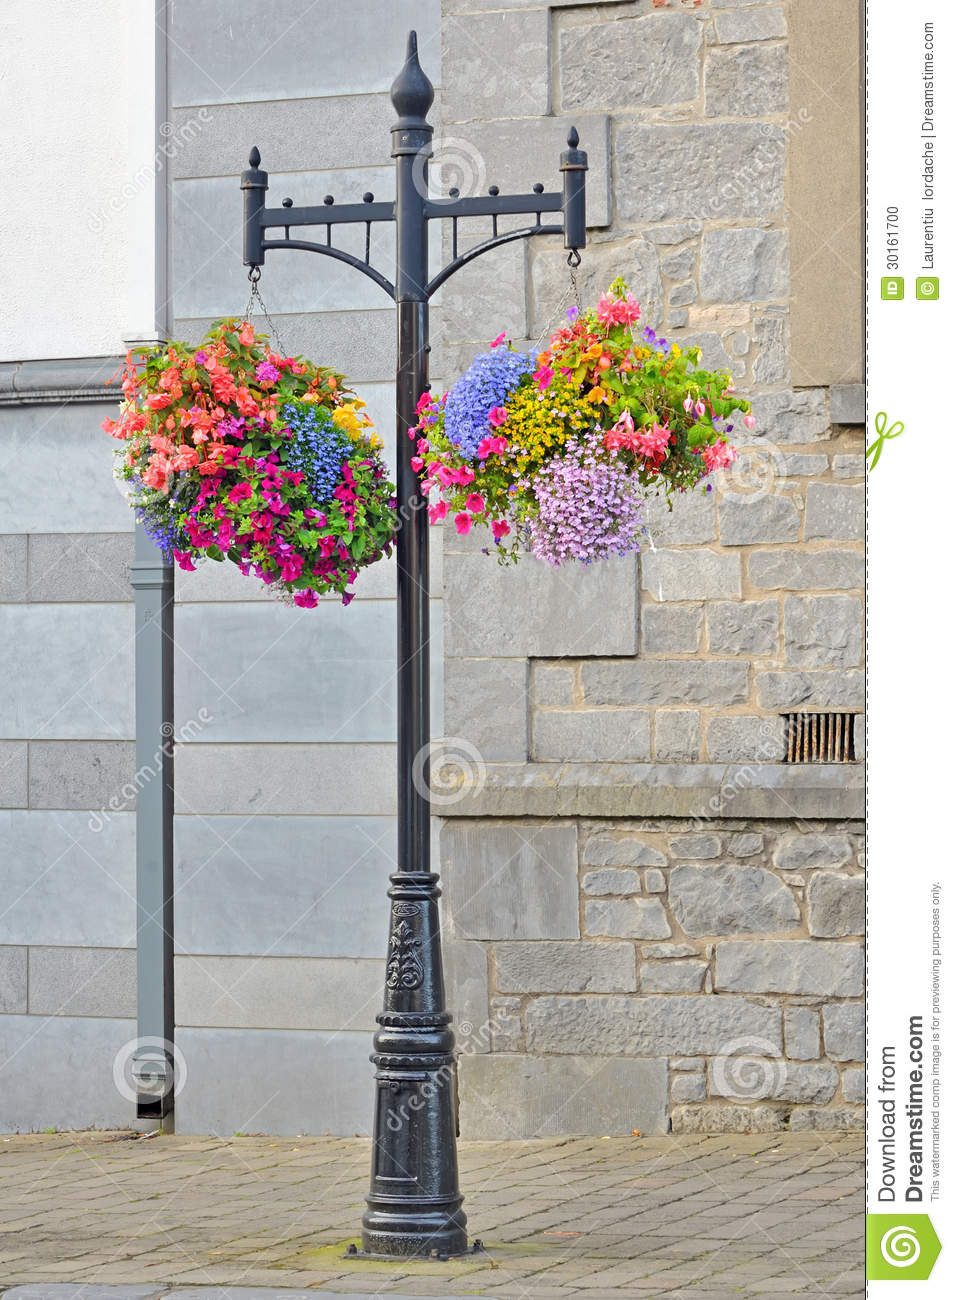 Decorative Lamp Post With Flower Basket Hanging From It